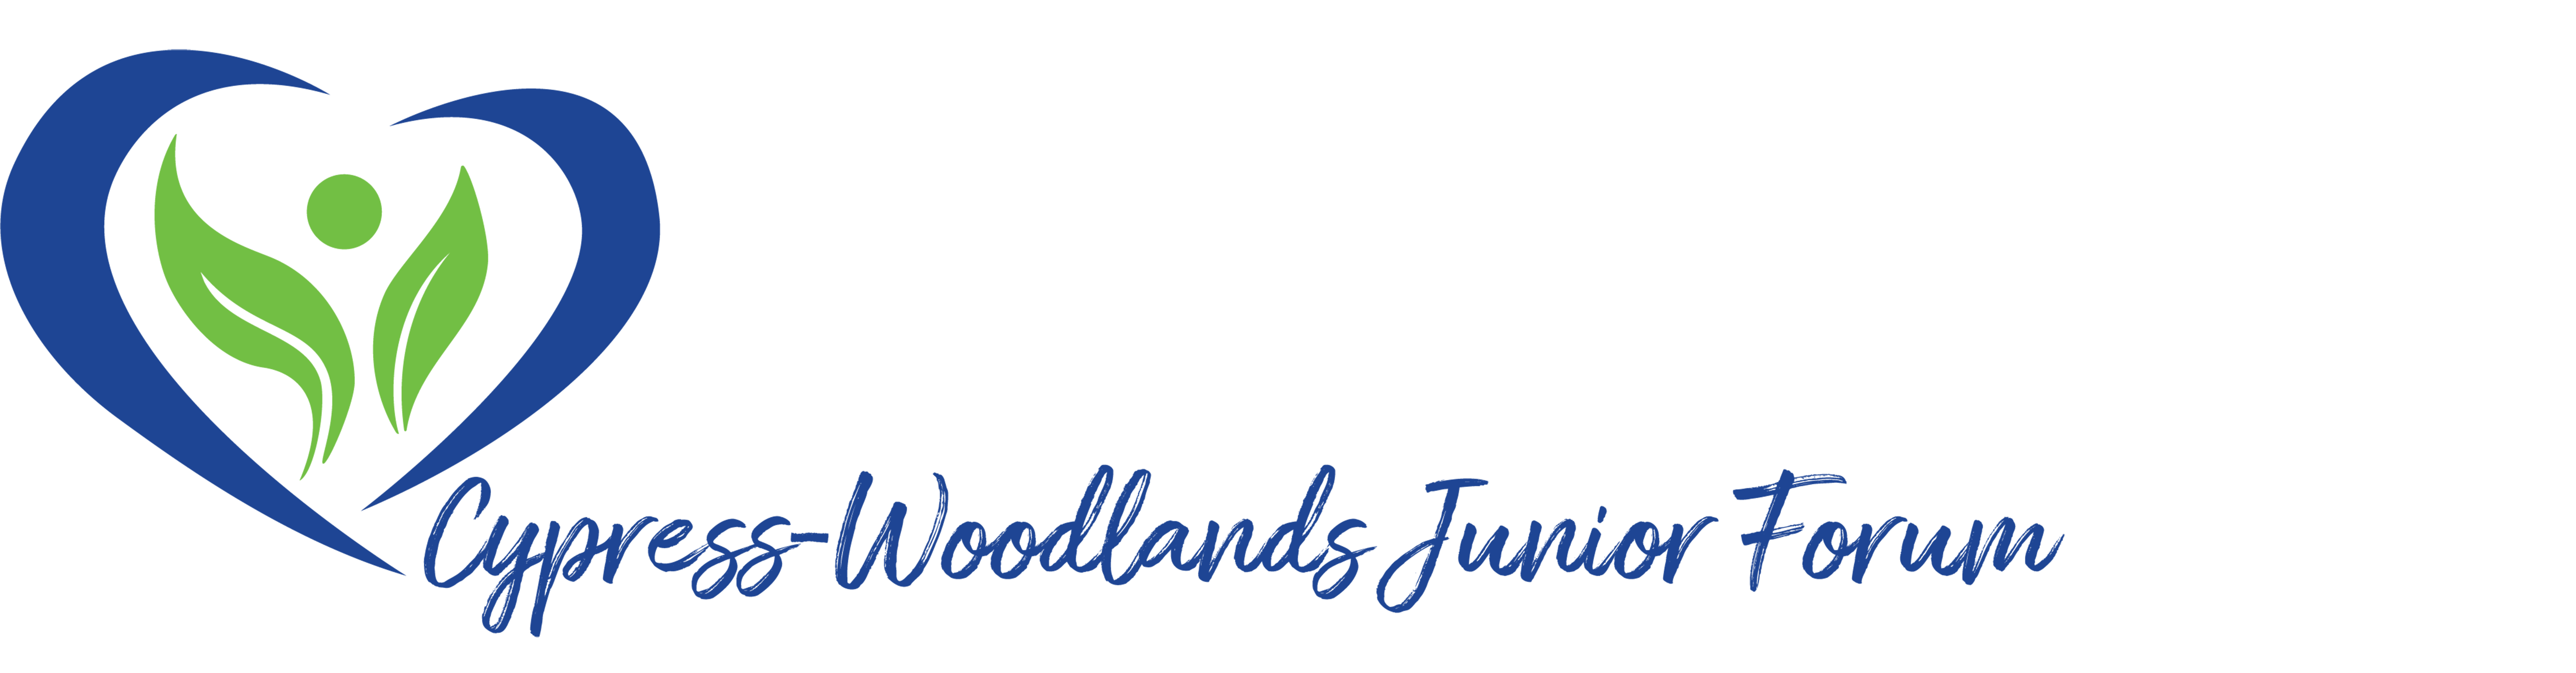 Cypress Woodlands Junior Forum